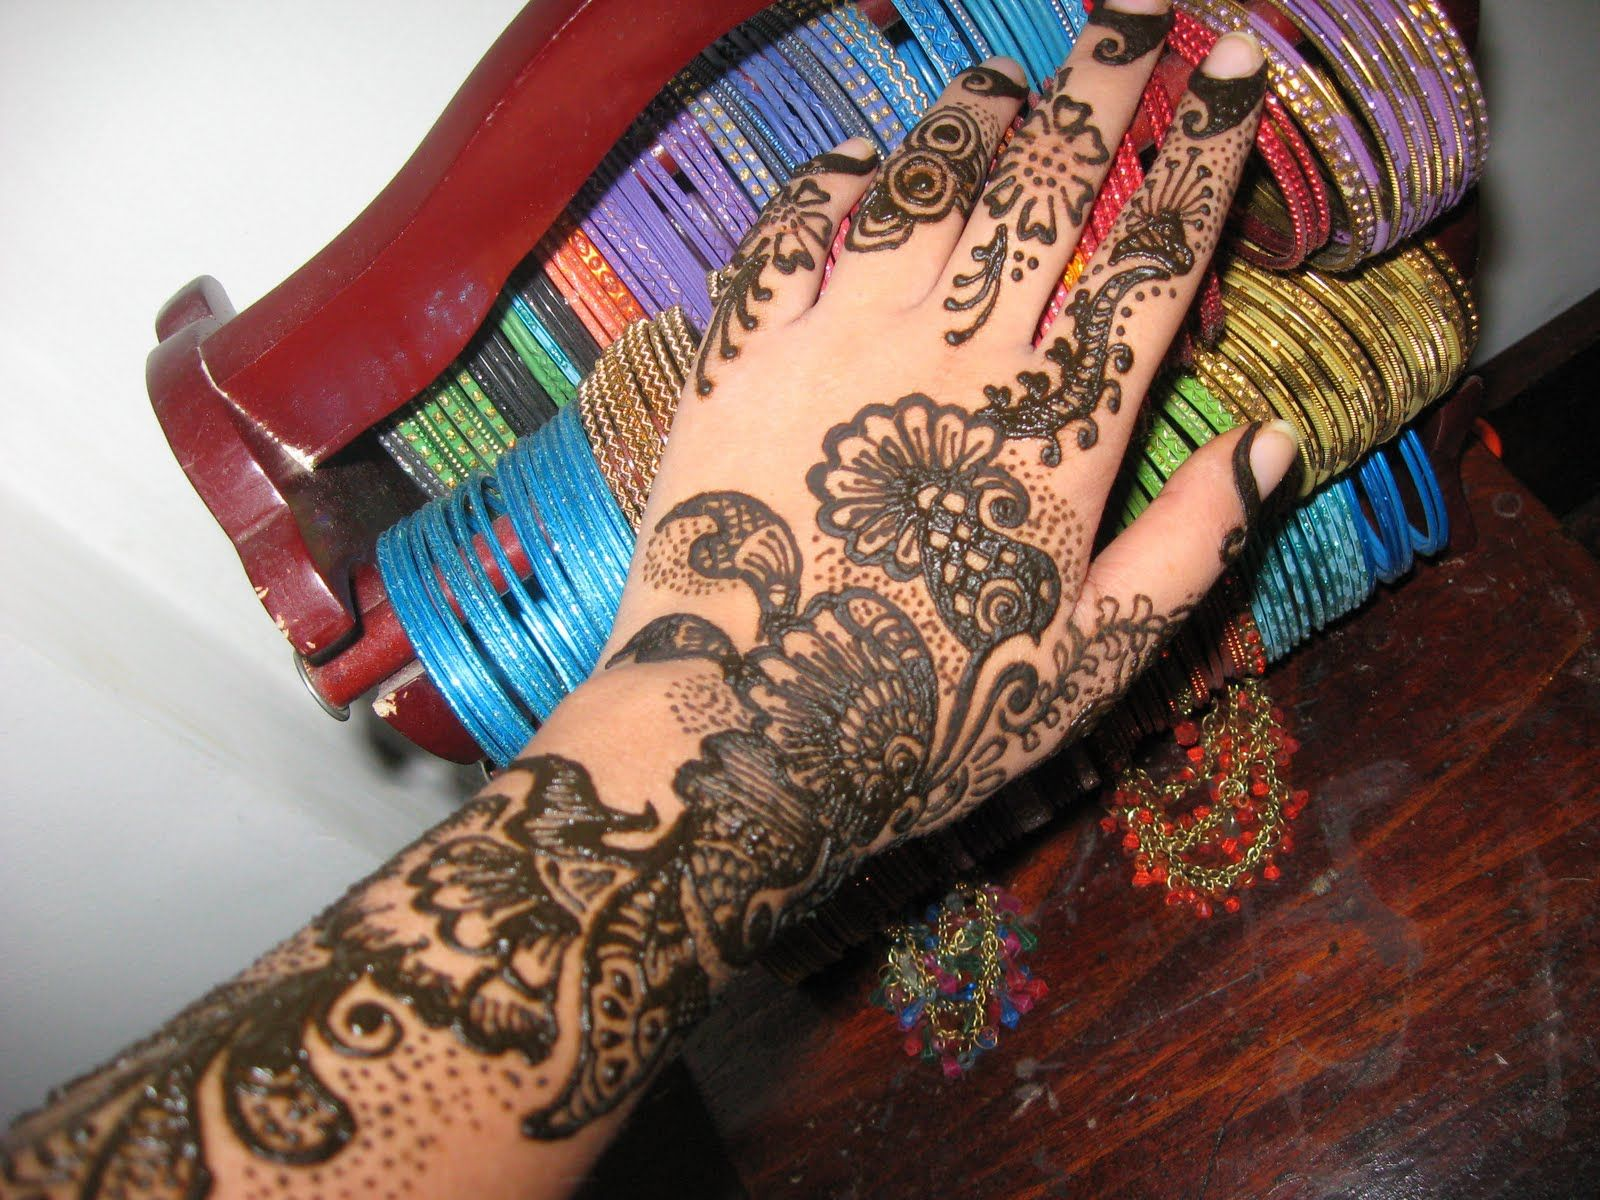 Arabic mehndi designs 2013 facebook - Latest Arabic Mehndi Designs For Hands 2013 Images Mehndi Designs Is Very Necessary Thing For Girls And Women Life Without Mehndi Designs Wedding Looking